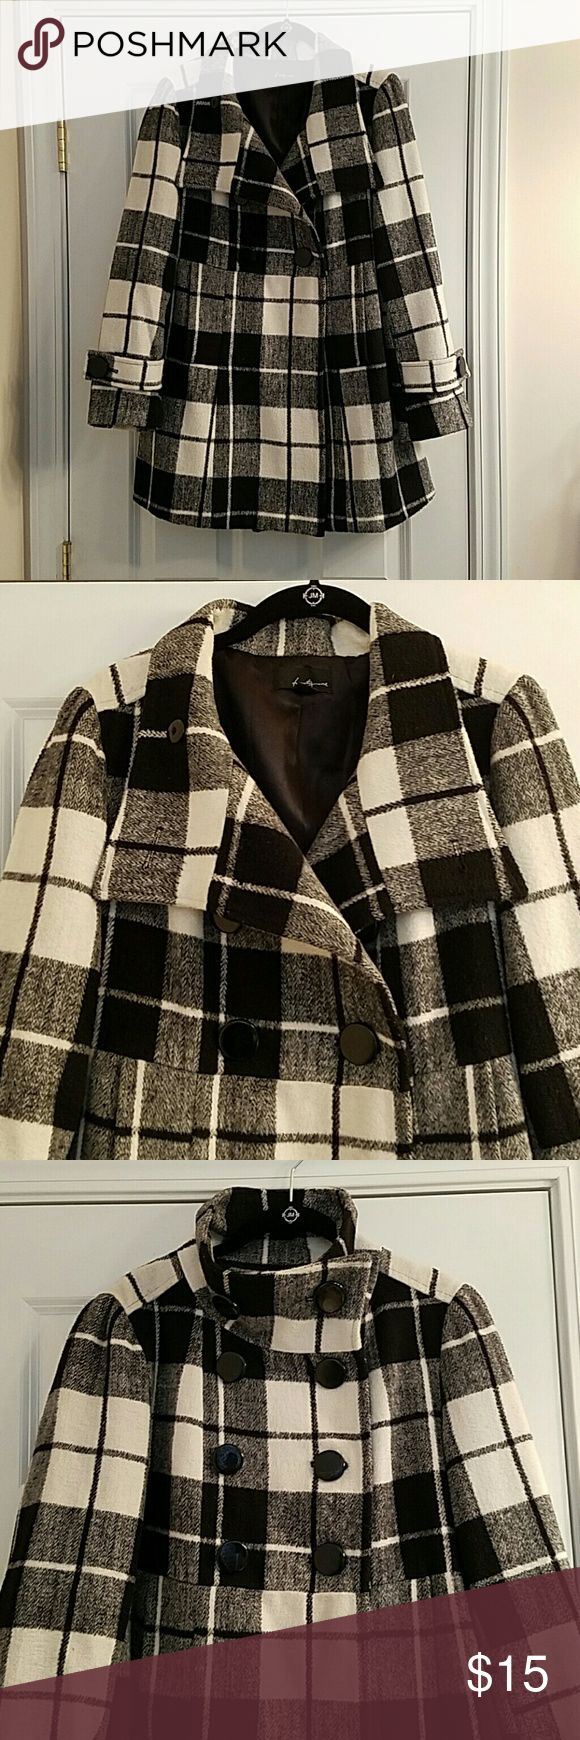 Black & White Plaid Double-Breasted Peacoat Warm double-breasted peacoat. Buttons up 2 different ways for style diversity. Medium weight ideal for fall/ early winter evenings. Classic black and white plaid pattern Forever 21 Jackets & Coats Pea Coats